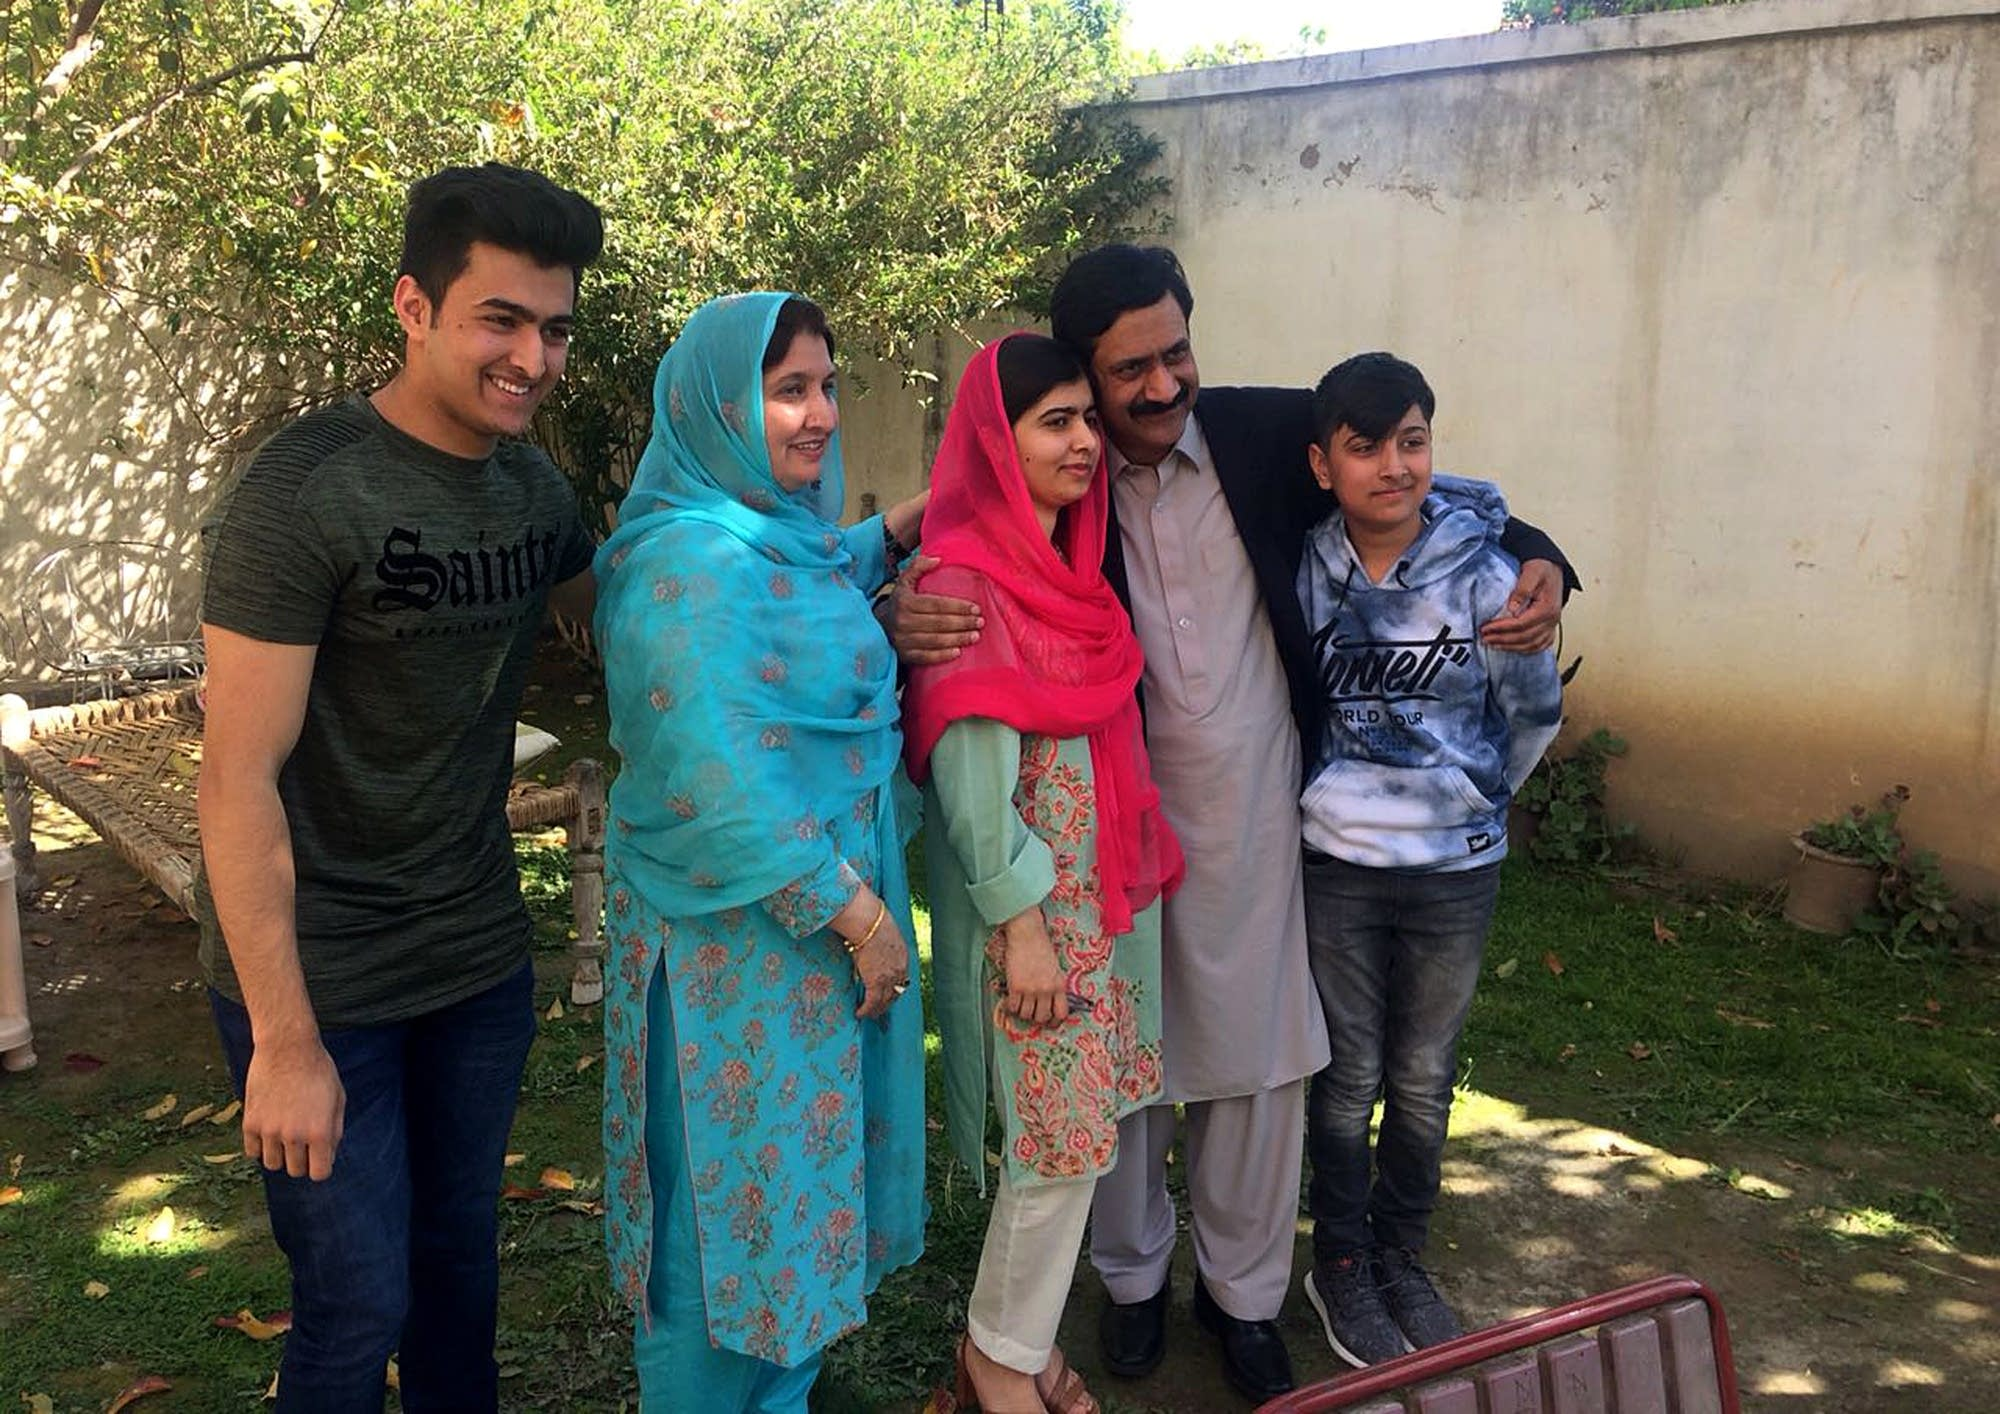 Malala Yousafzai poses for a photograph with her family members.